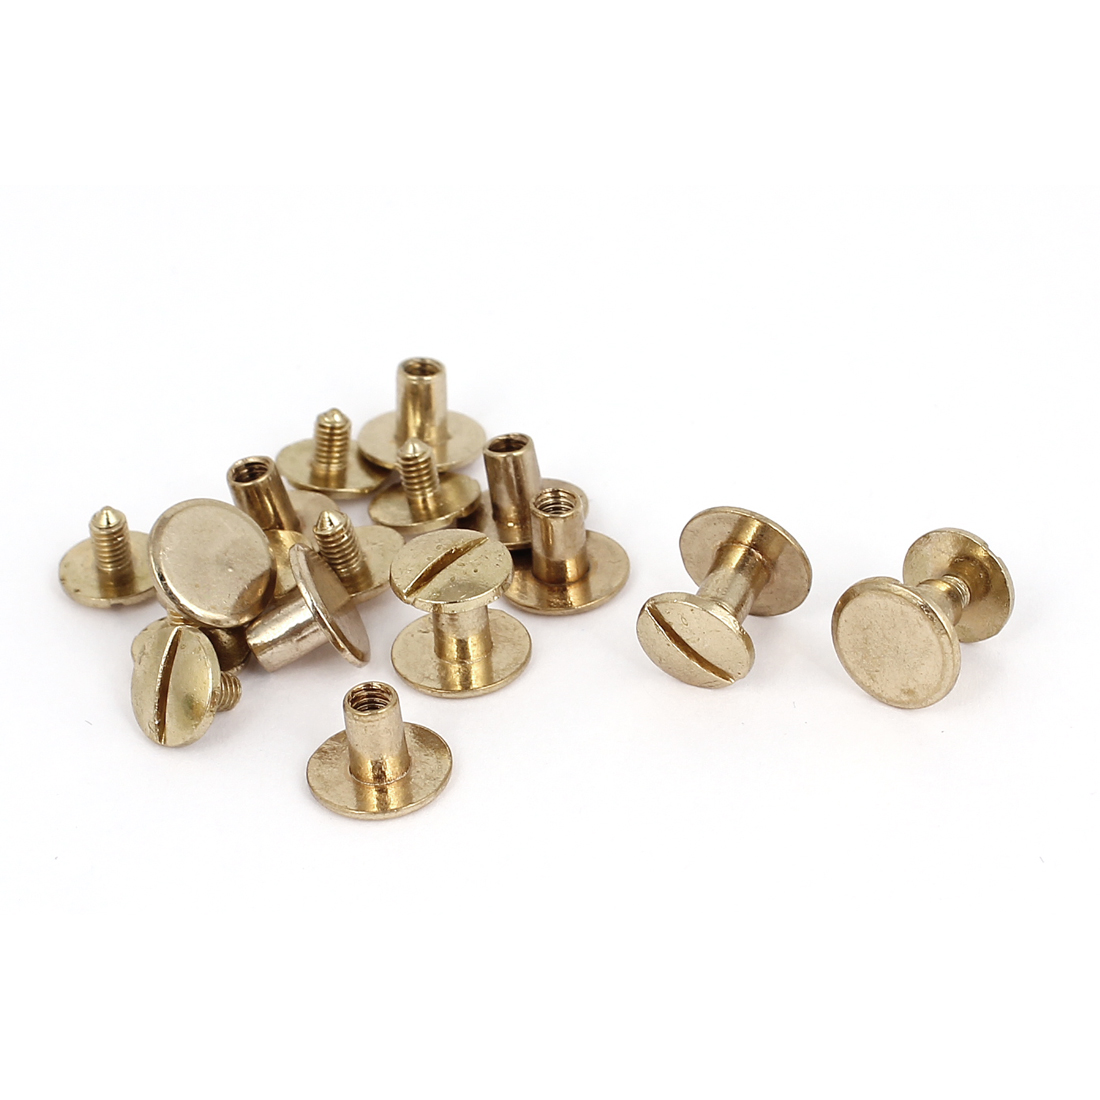 4.5x7mm Brass Plated Binding Chicago Screw Post For Albums Scrapbook 10pcs